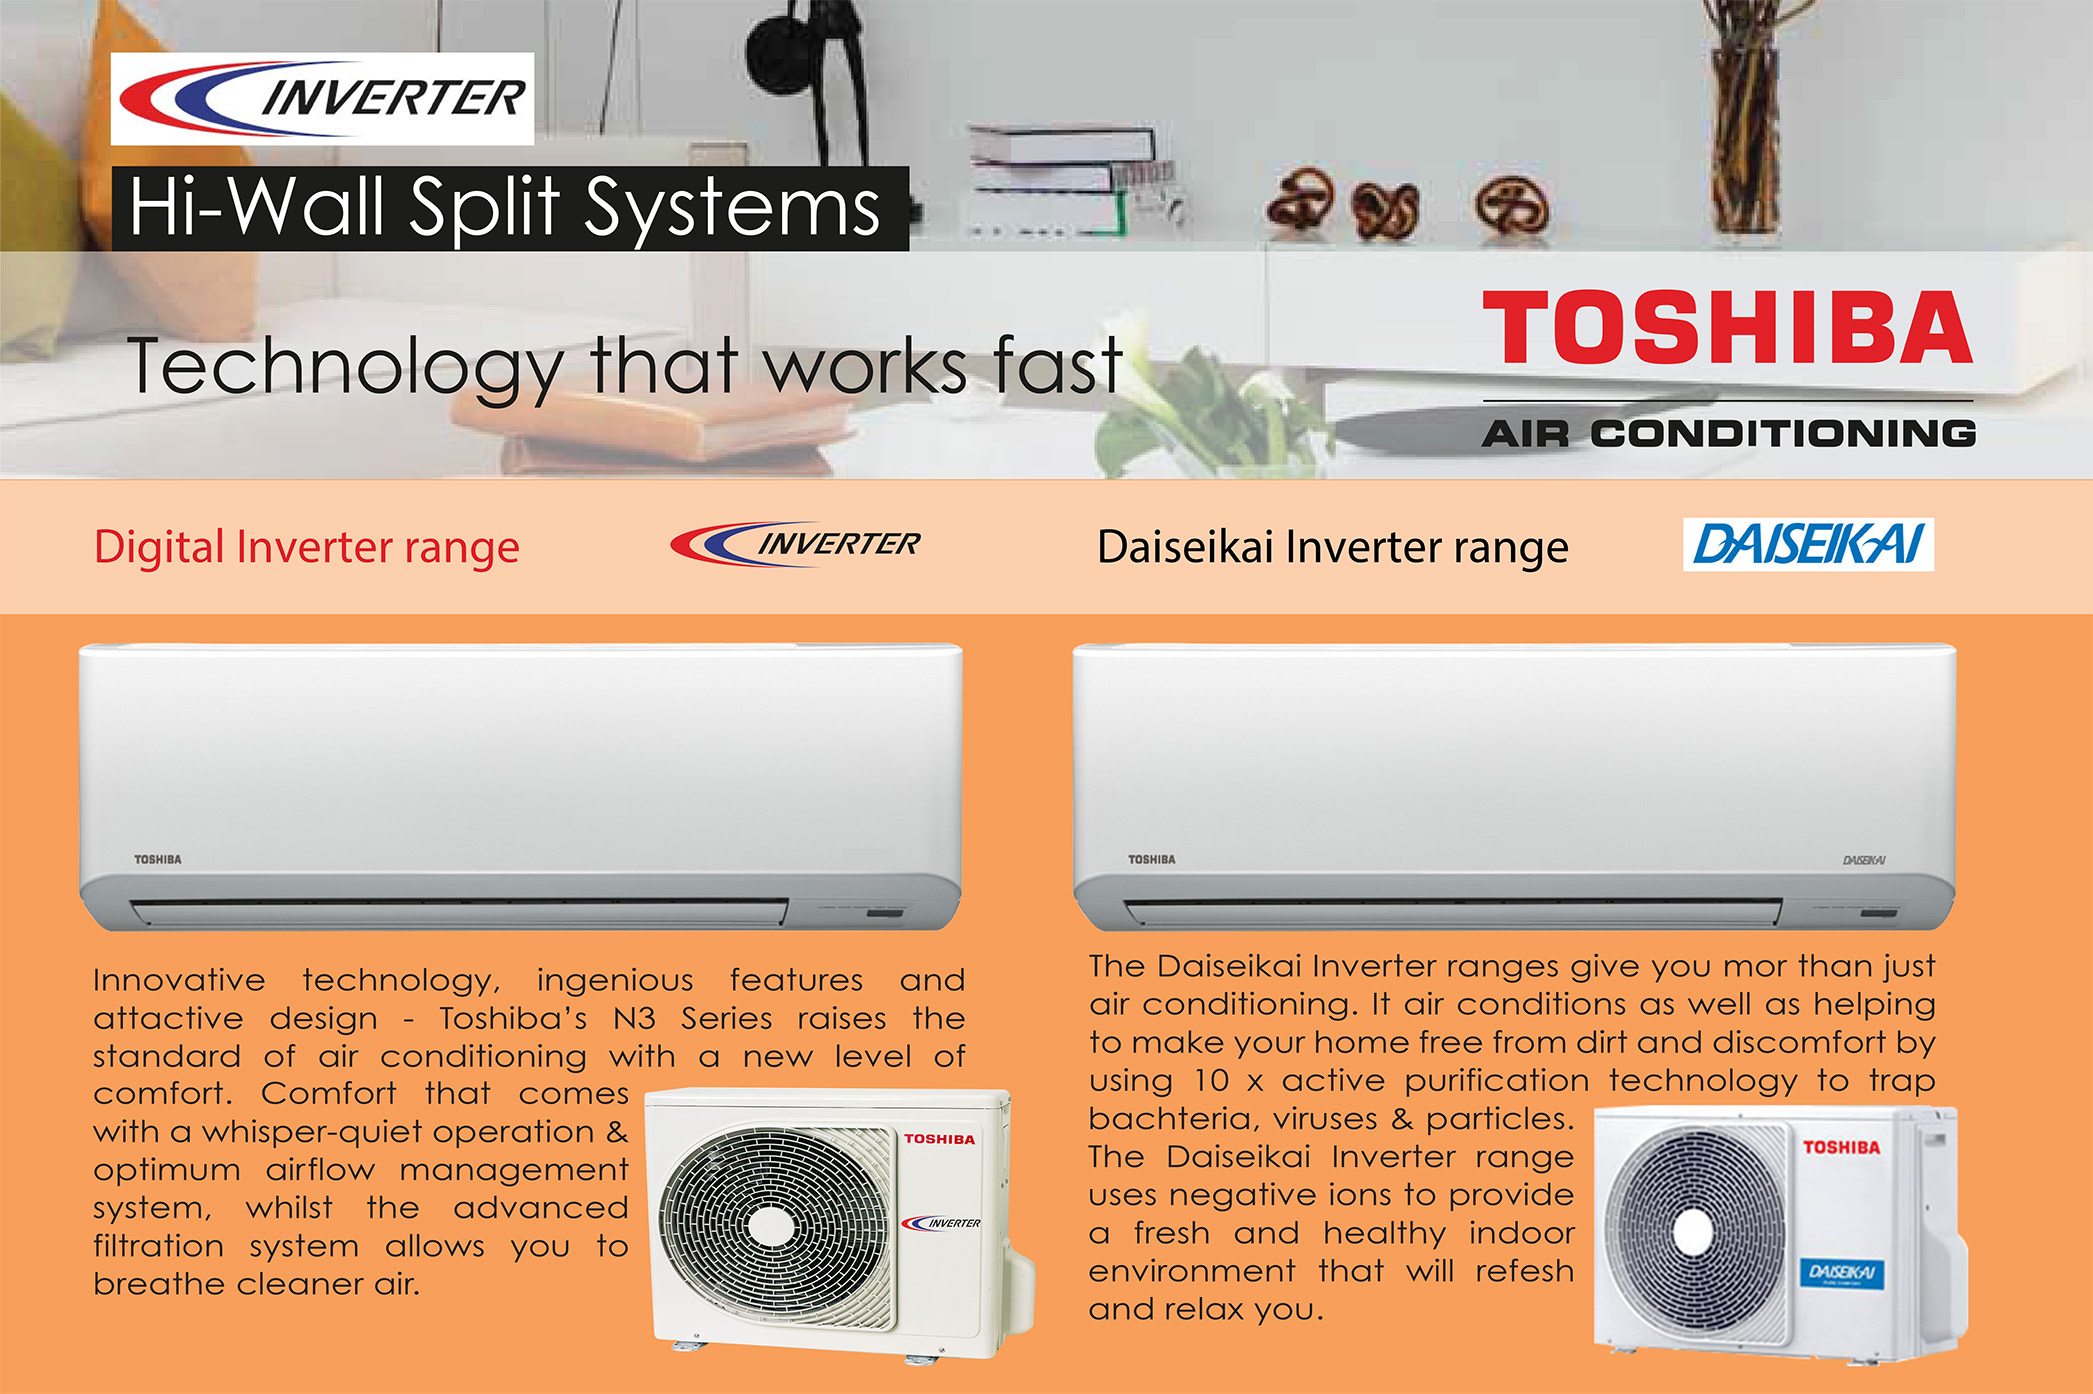 Toshiba High Wall Split Systems